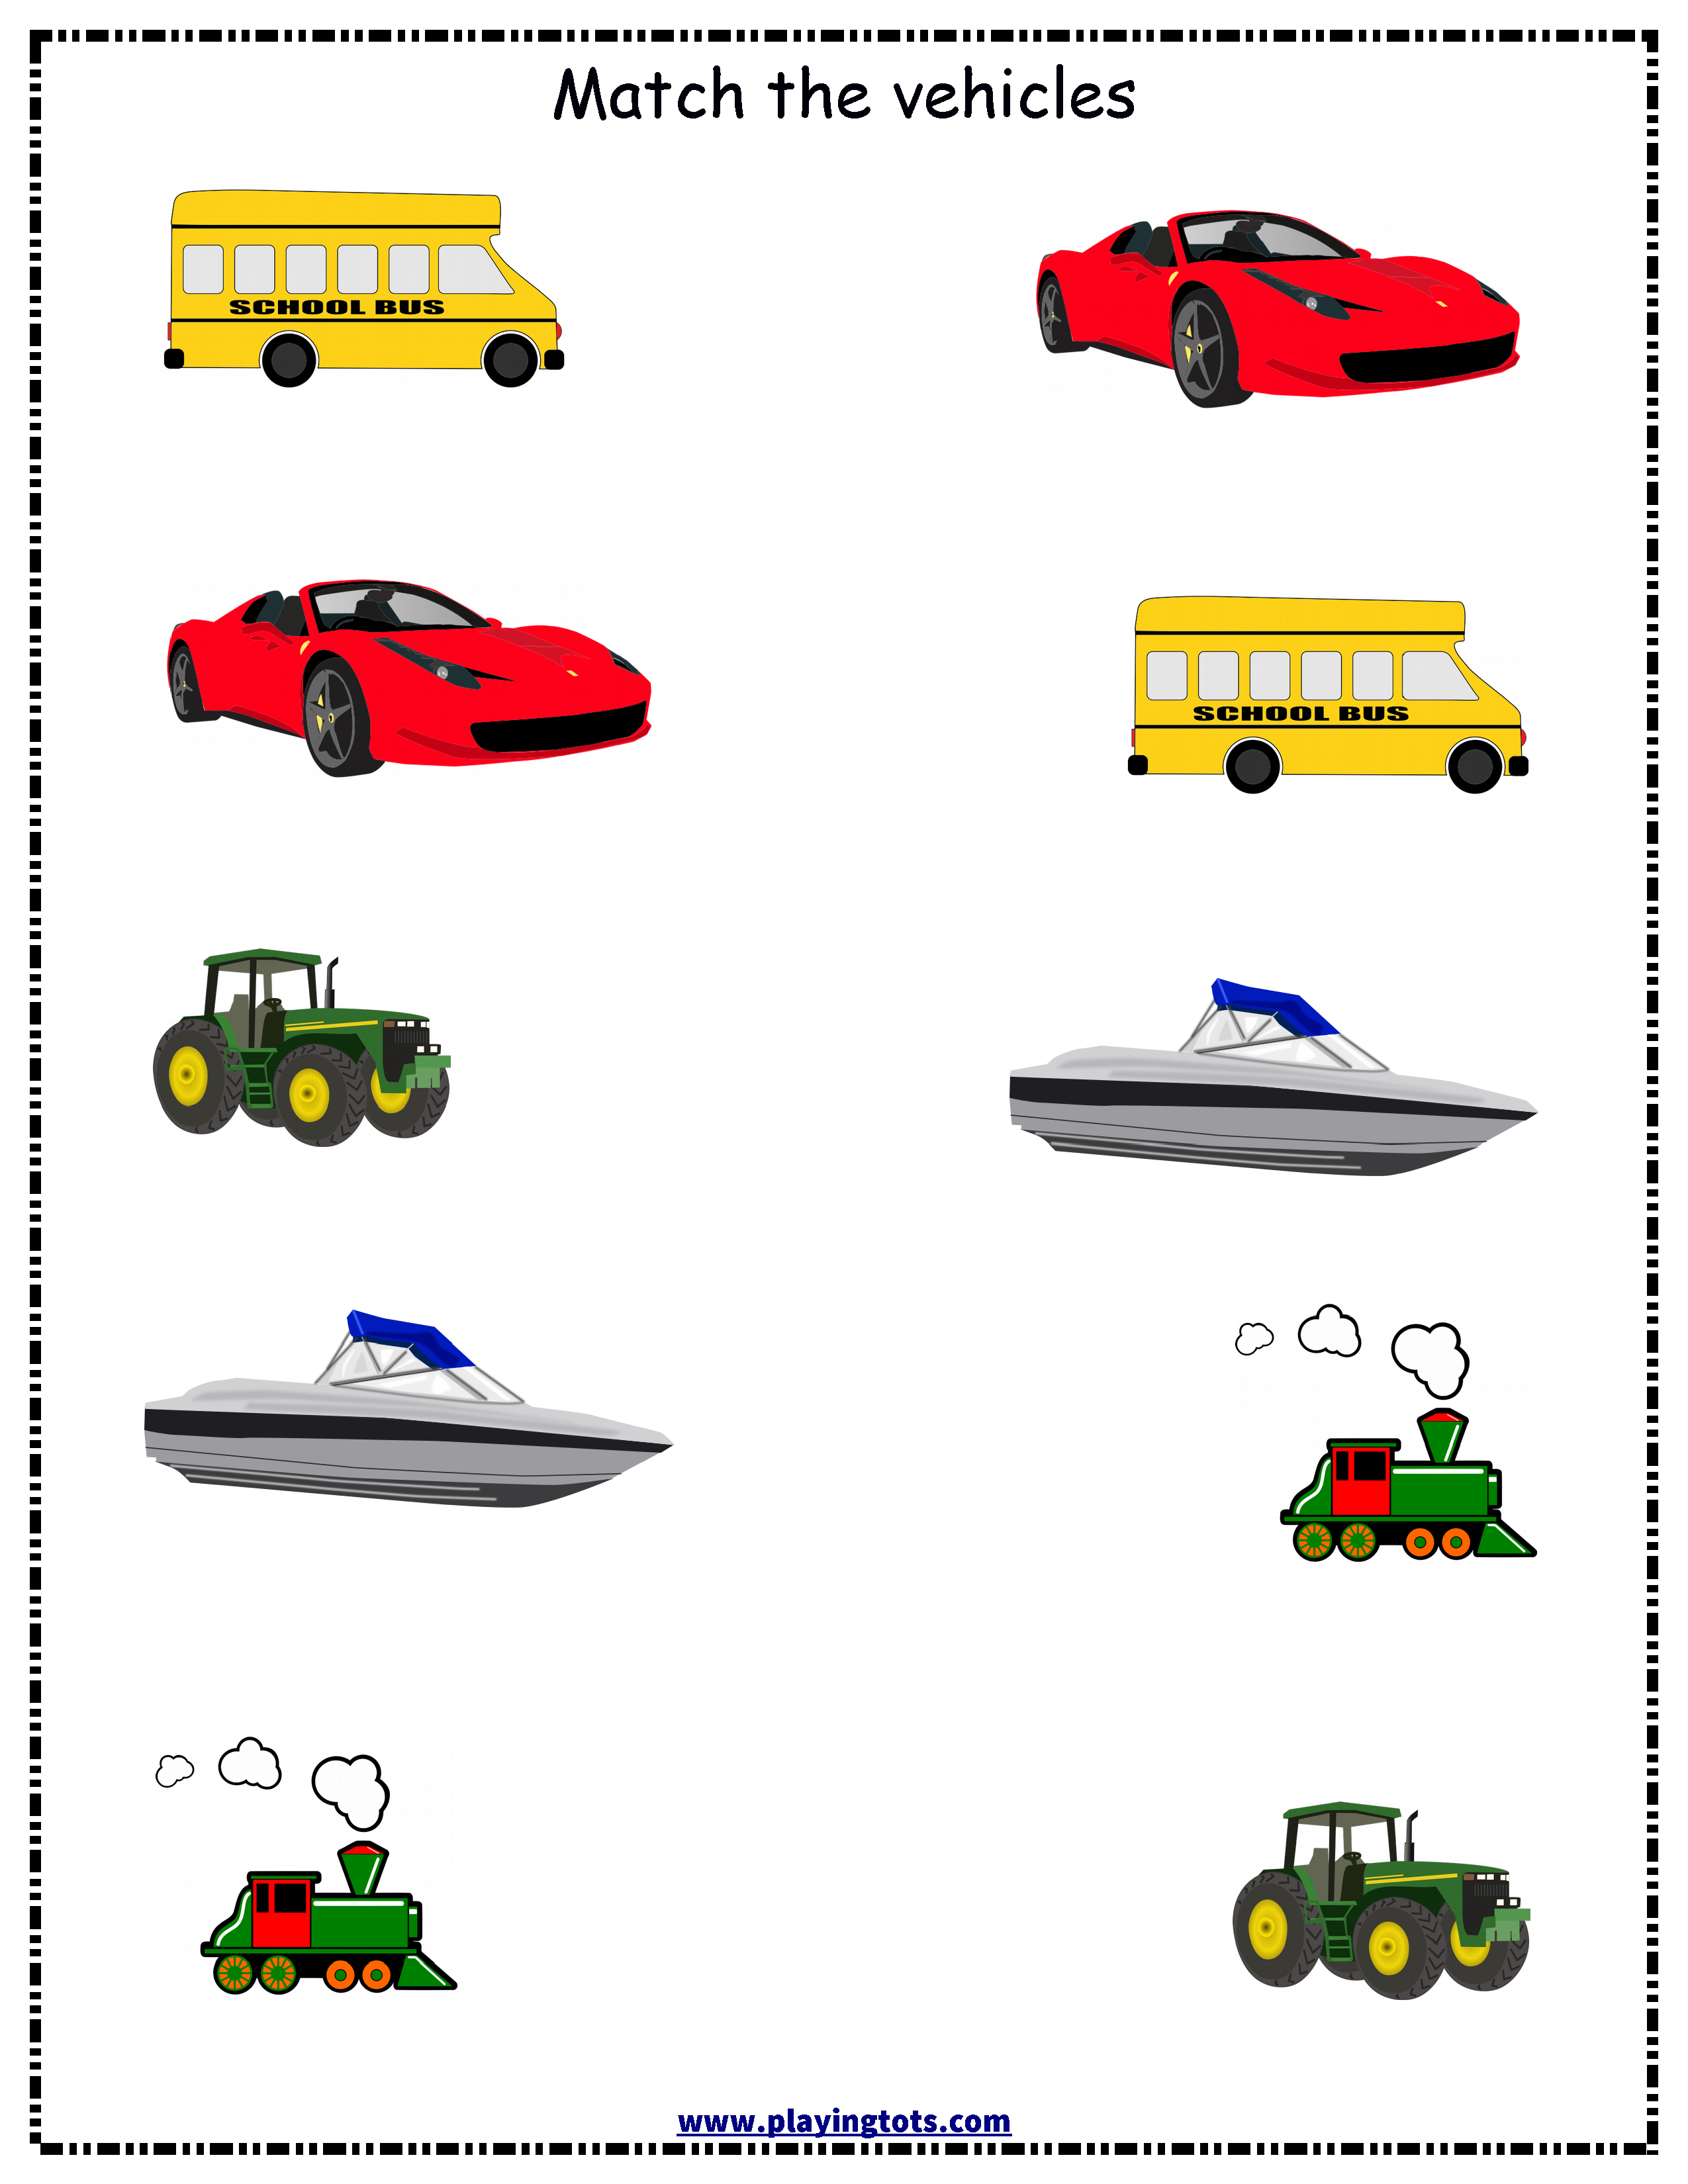 Free Vehicle Matching Printable Worksheet For Toddler